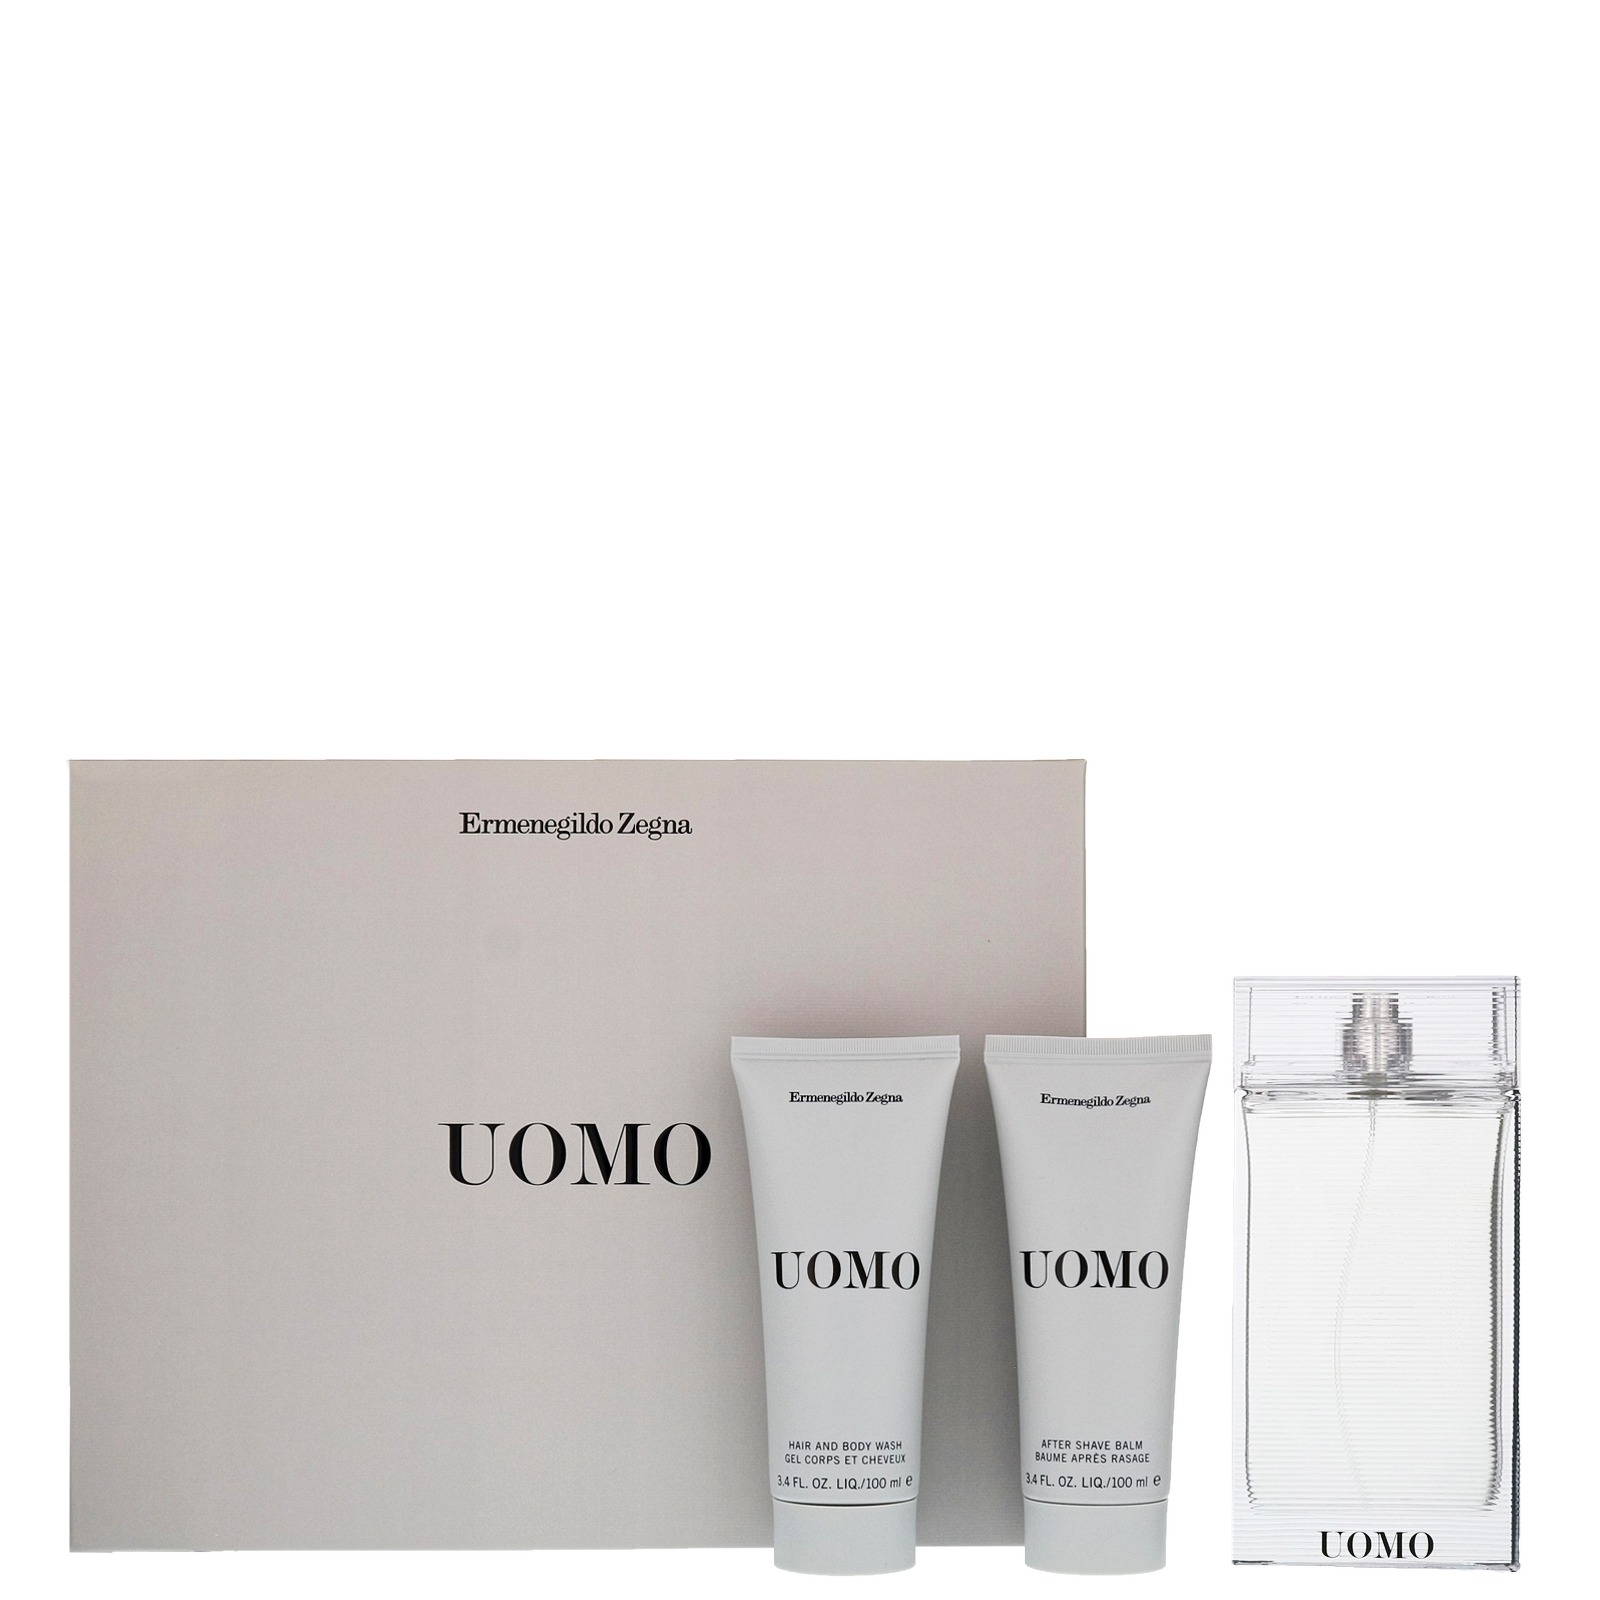 Ermenegildo Zegna Uomo Eau de Toilette Spray 100ml Gift Set - Gifts   Sets 3eb97bd8fa3